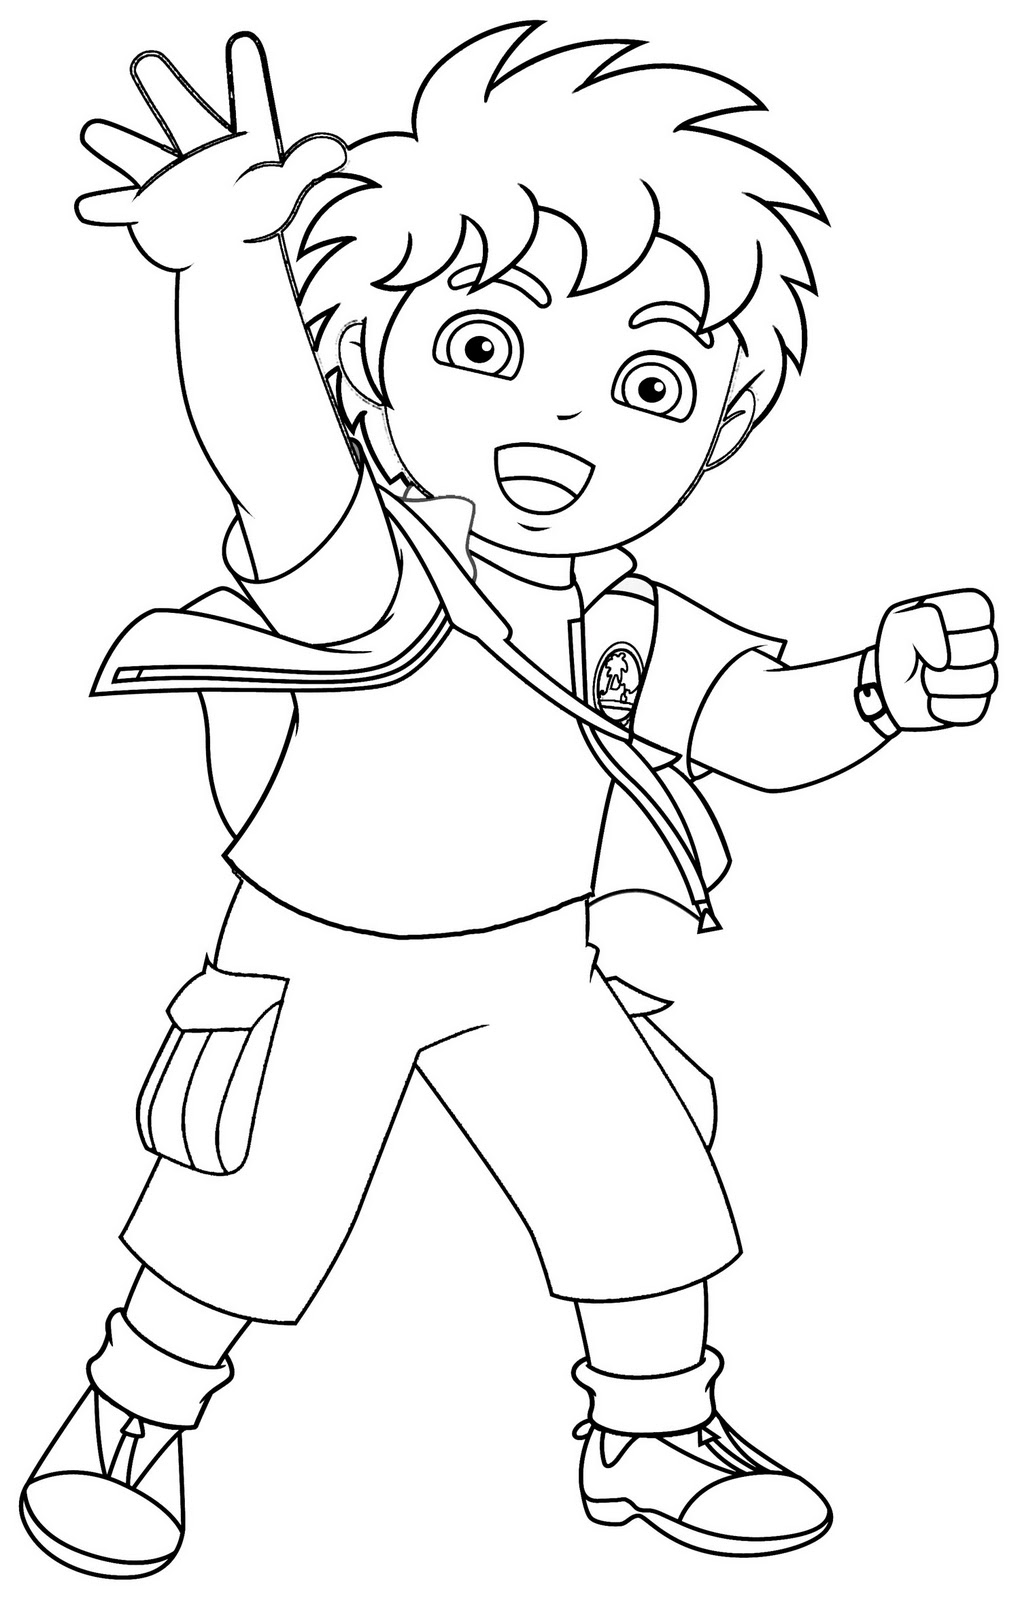 Diego to color for children - Diego Kids Coloring Pages